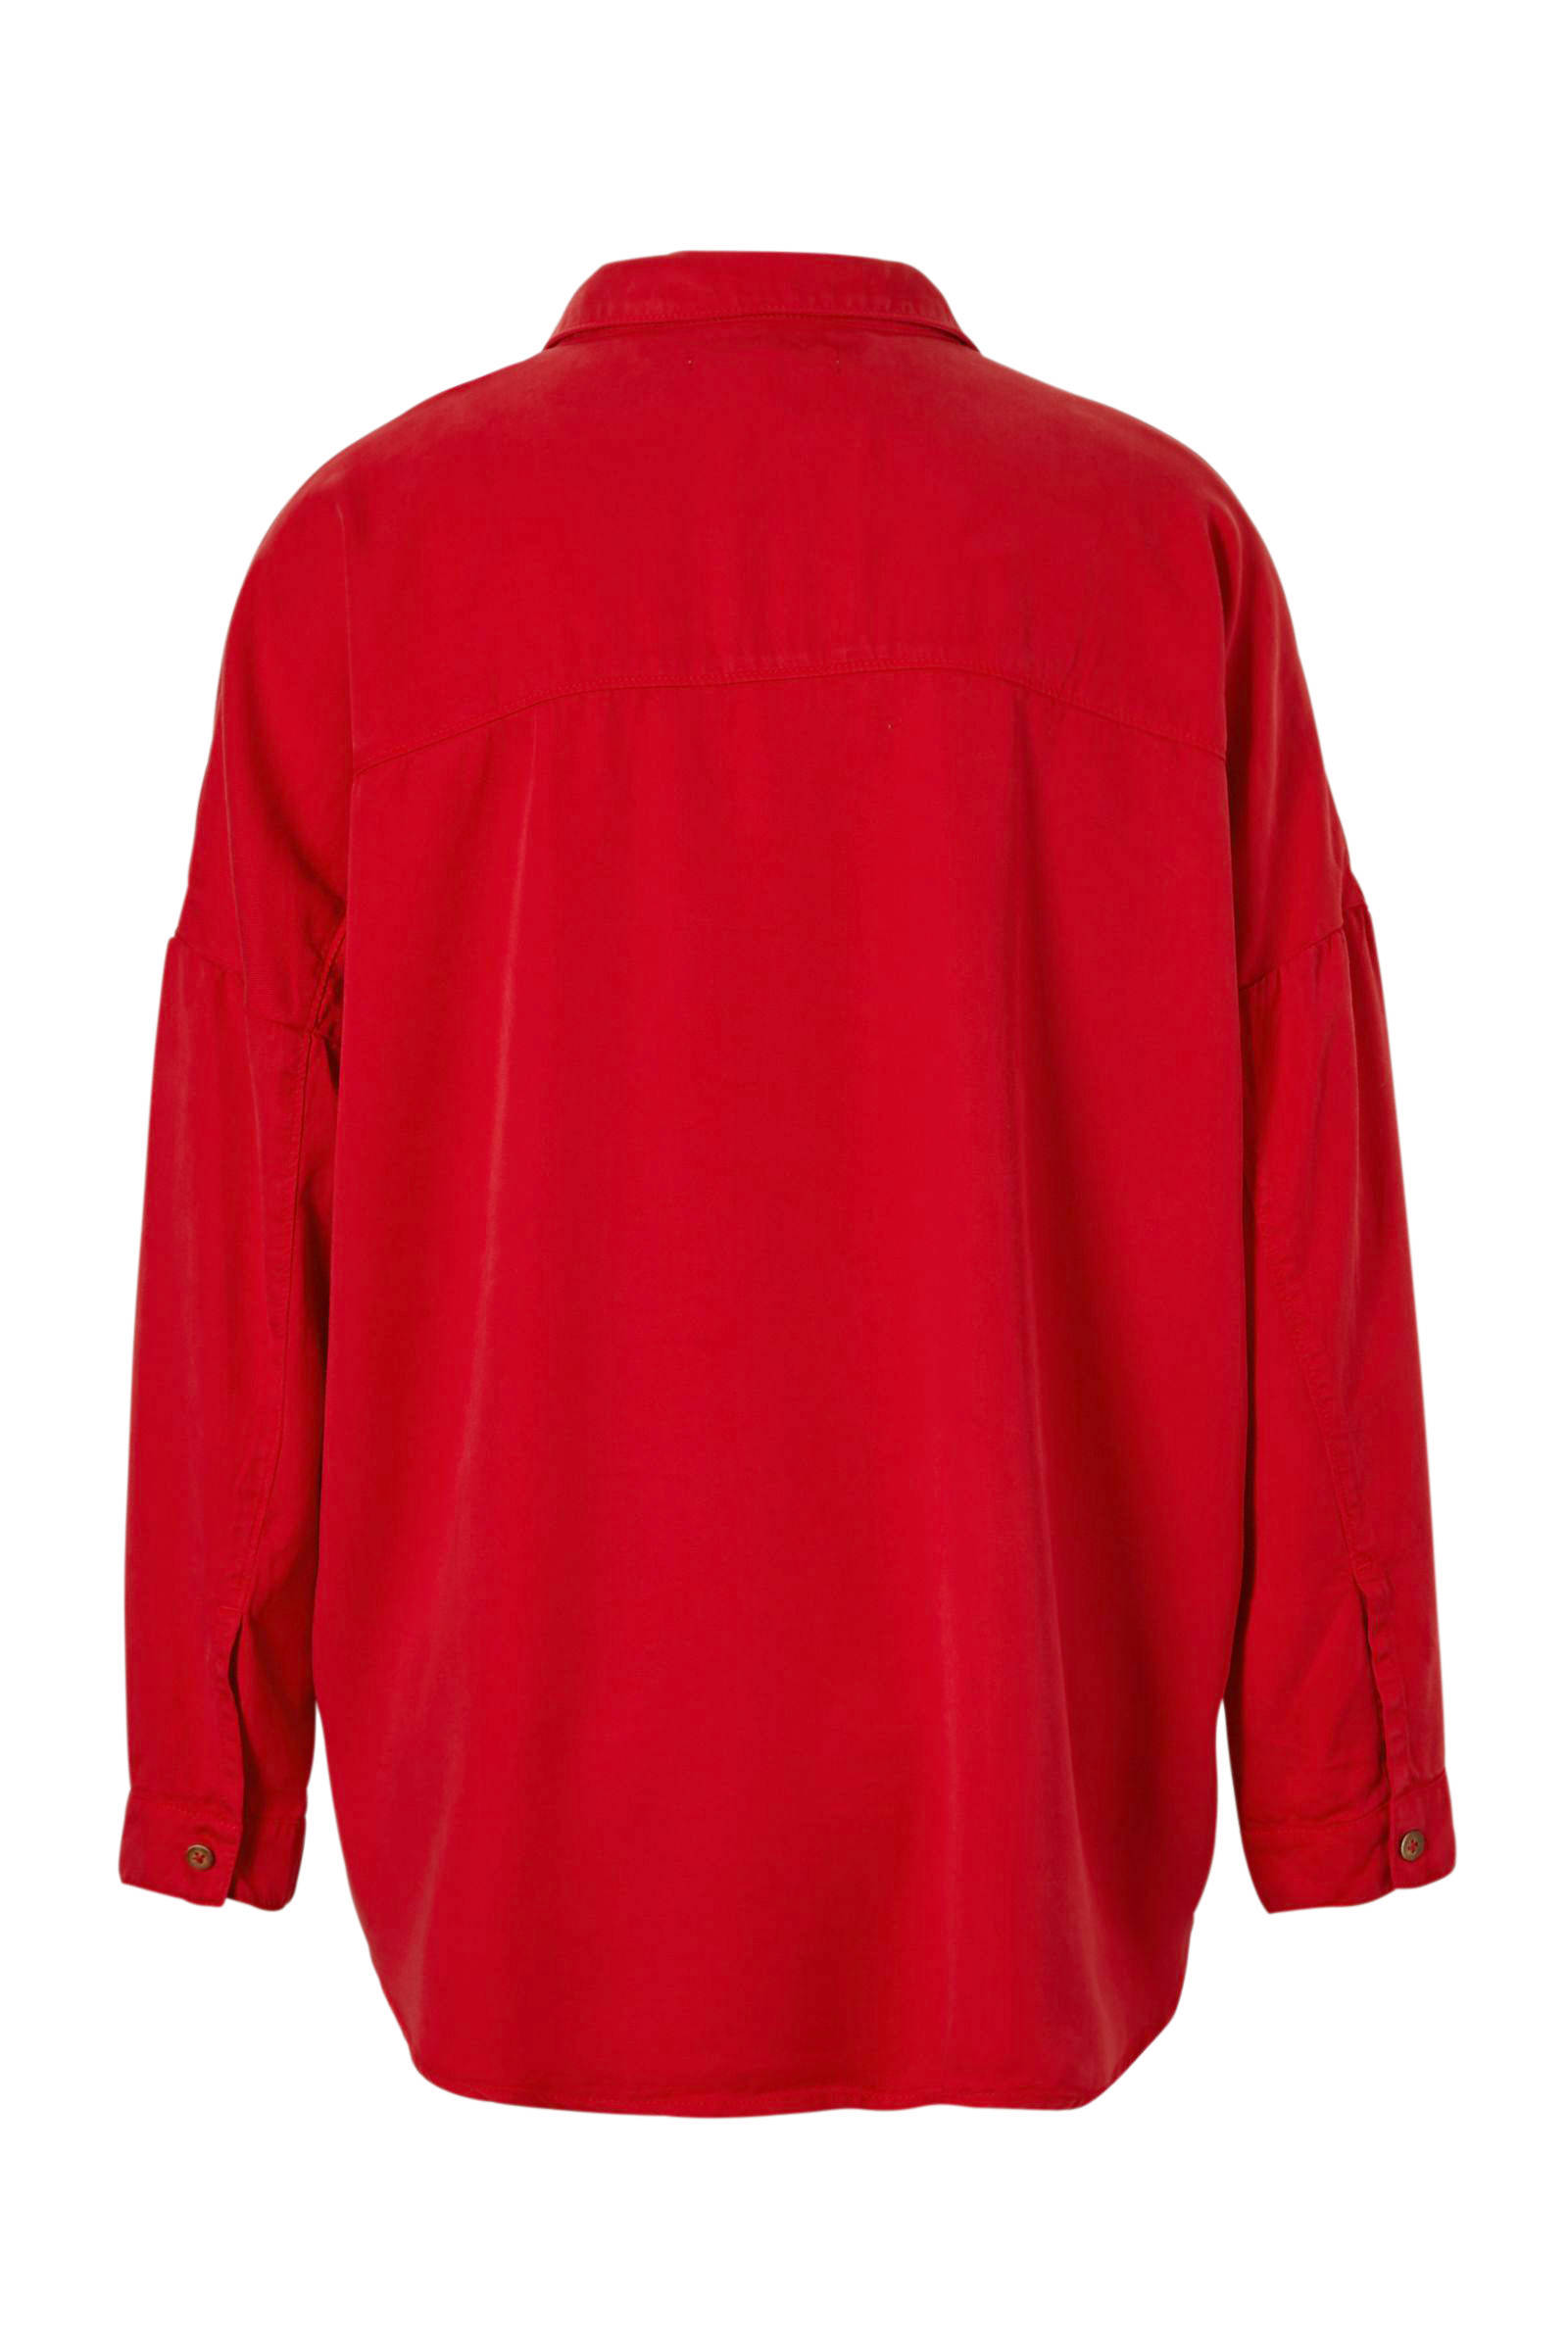 Casual ESPRIT ESPRIT rood blouse Women Casual Women ESPRIT Casual blouse rood Women U7wTH11Acq